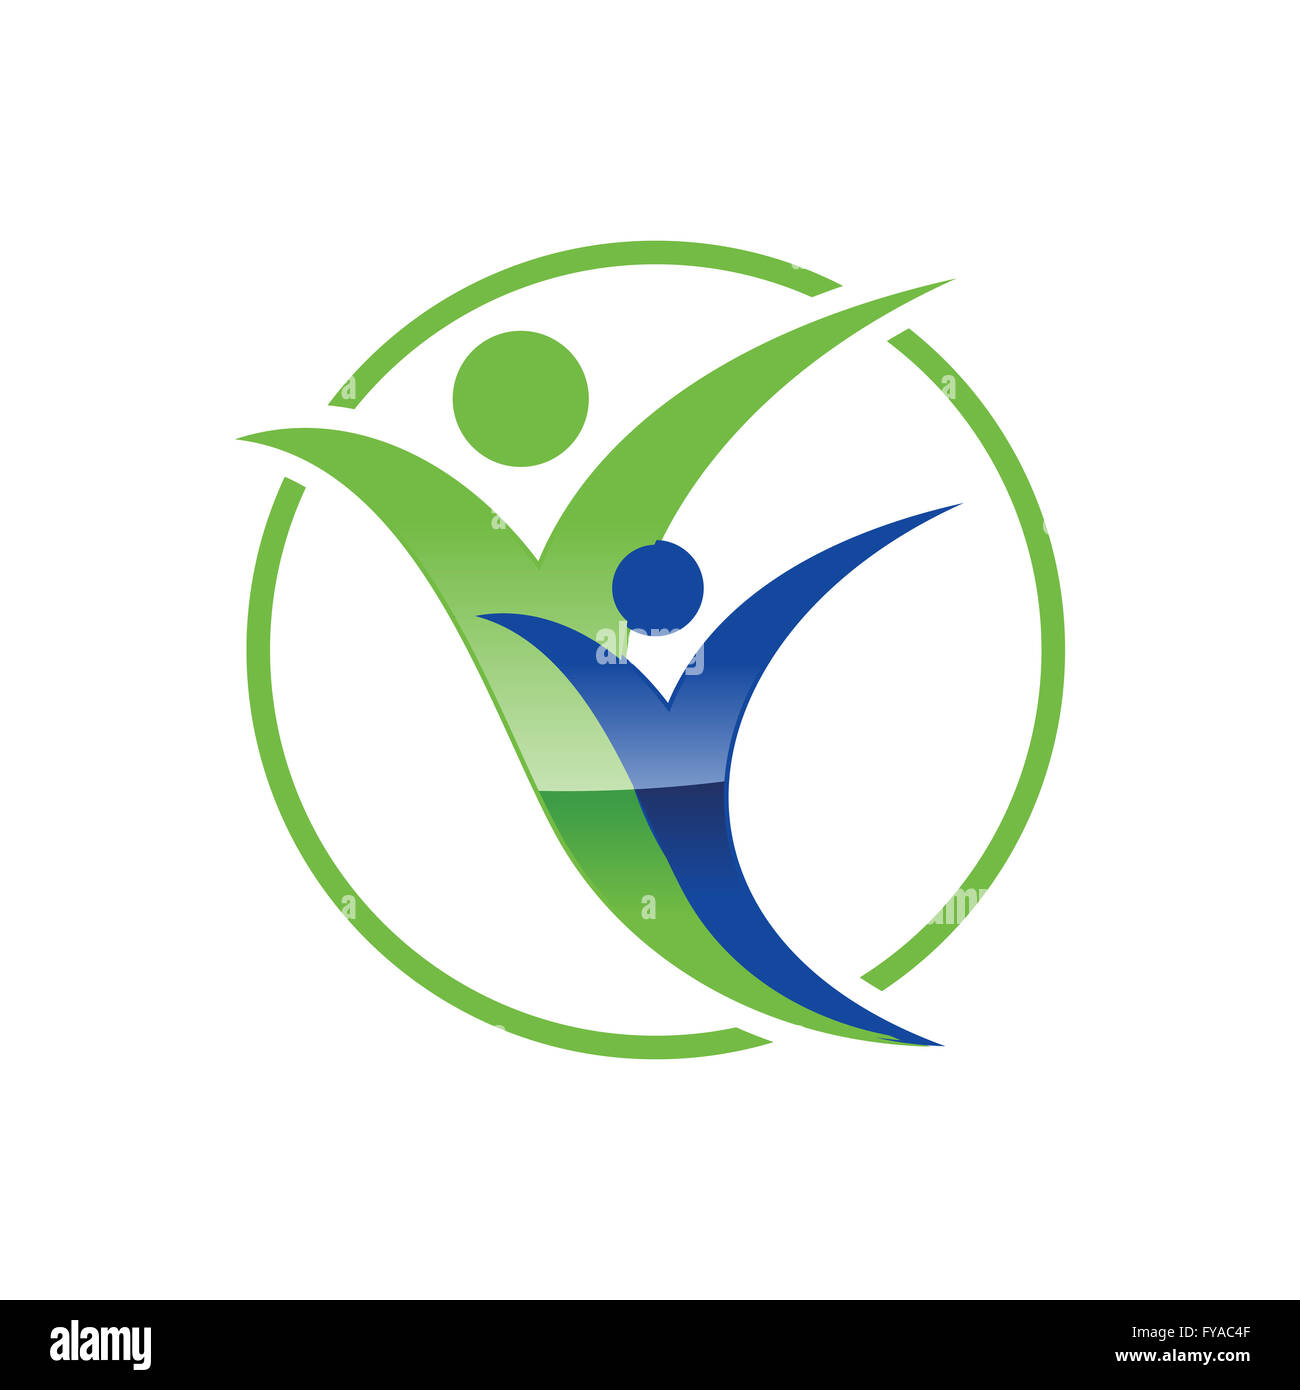 Healthy Living Symbol - Stock Image